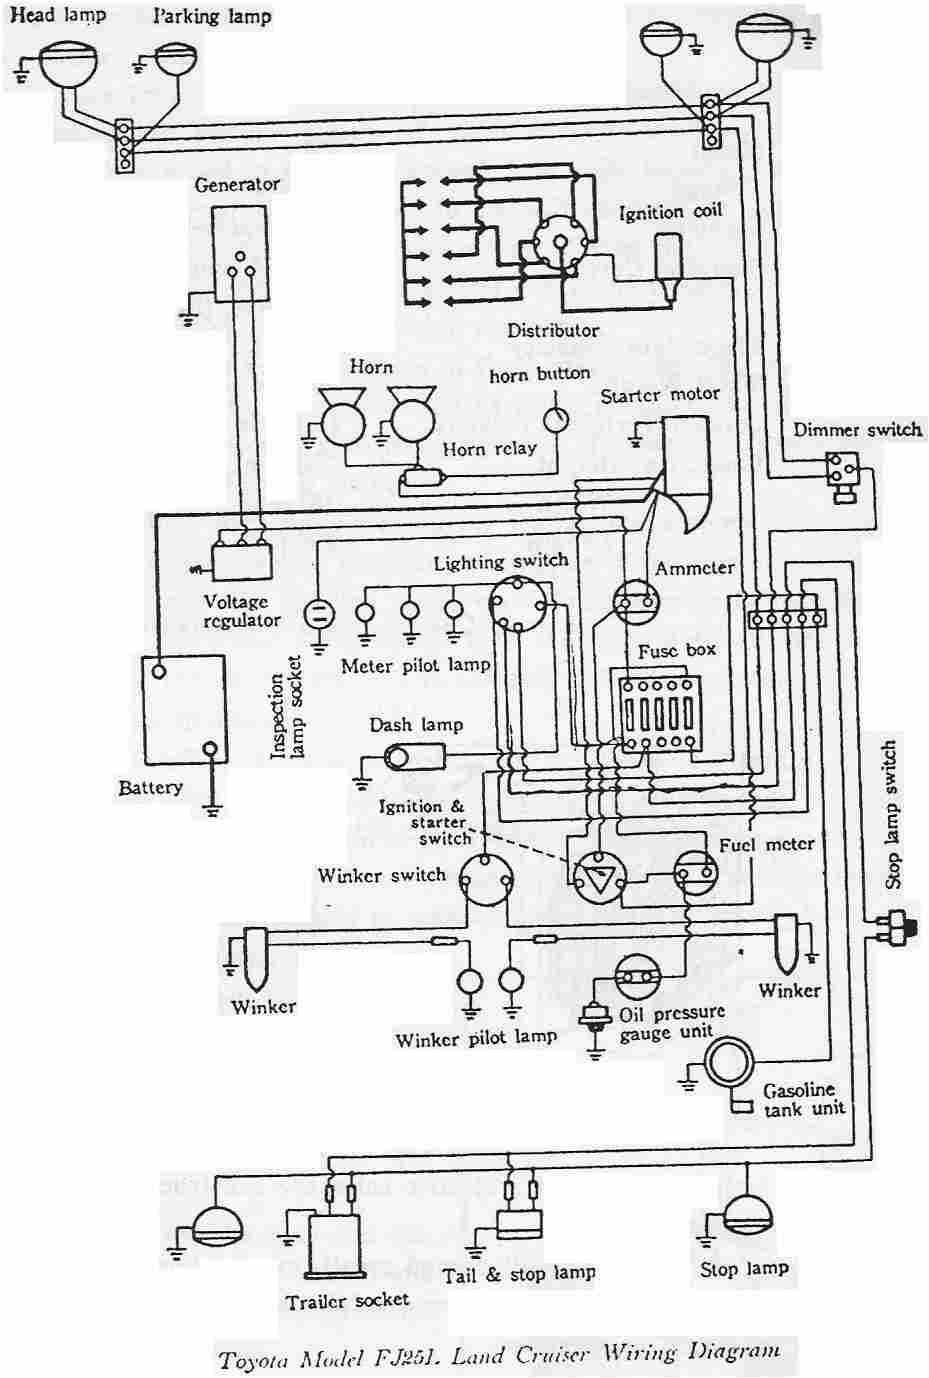 diagram] 2003 toyota wiring diagram full version hd quality wiring diagram  - diagramate.usrdsicilia.it  diagram database - usrdsicilia.it